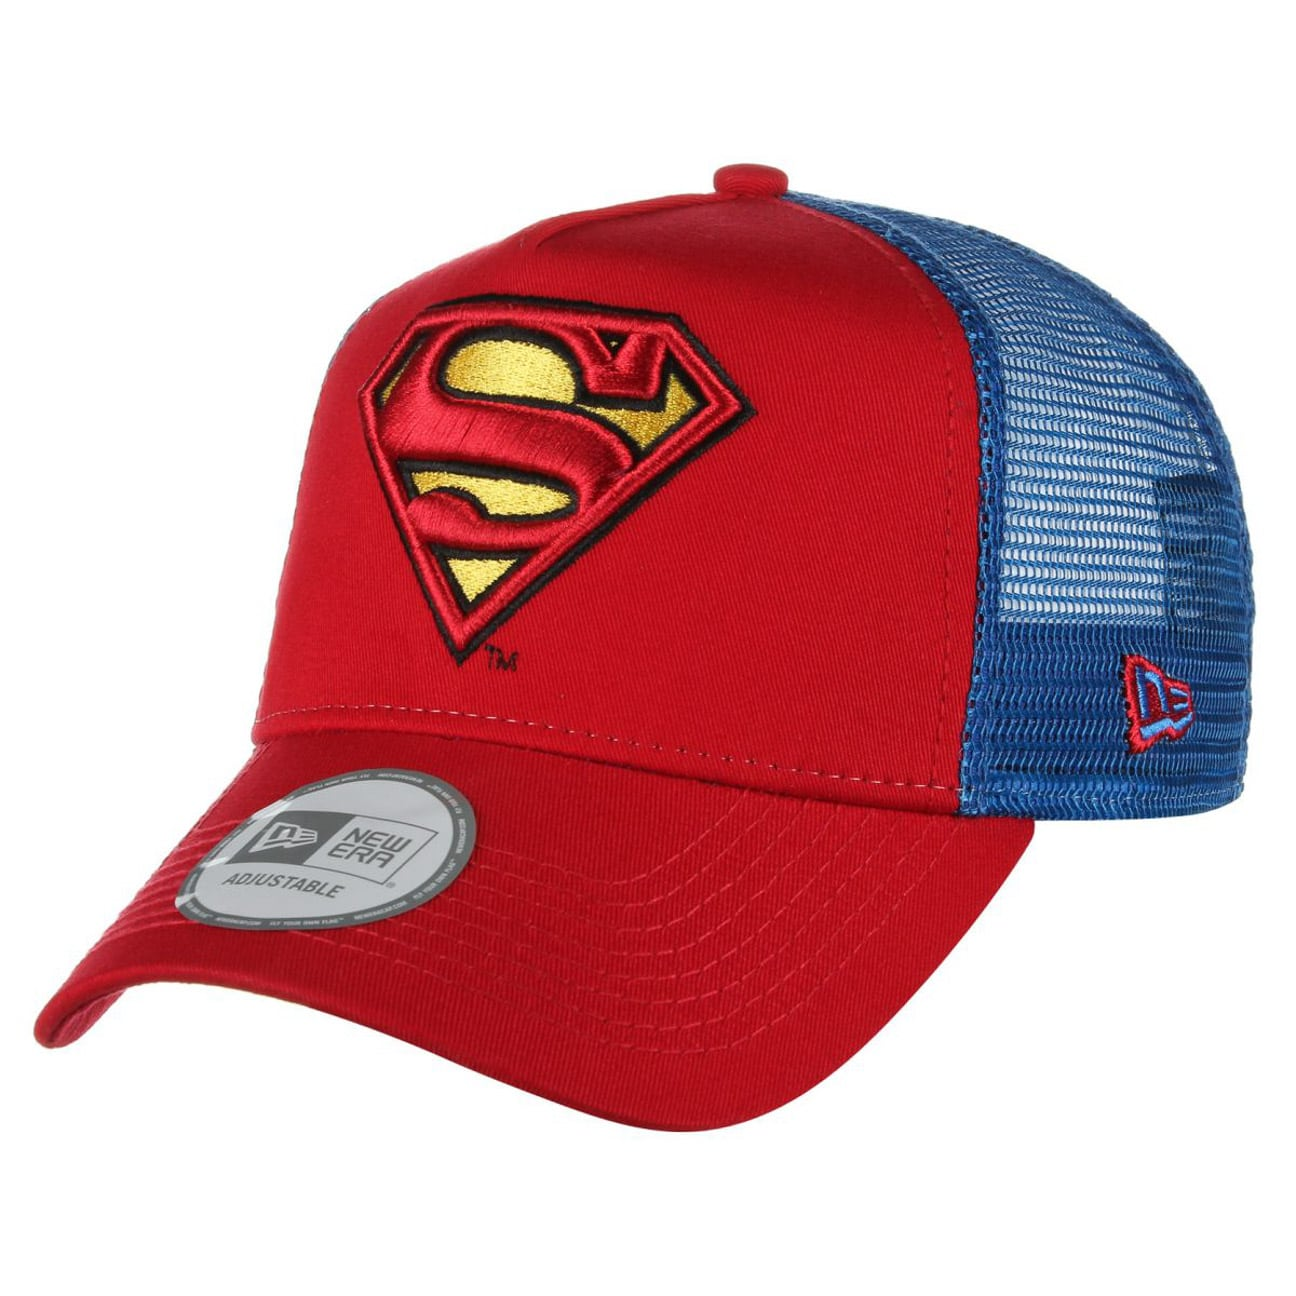 14160e9d12be Superman Mesh Cap by New Era - red 1